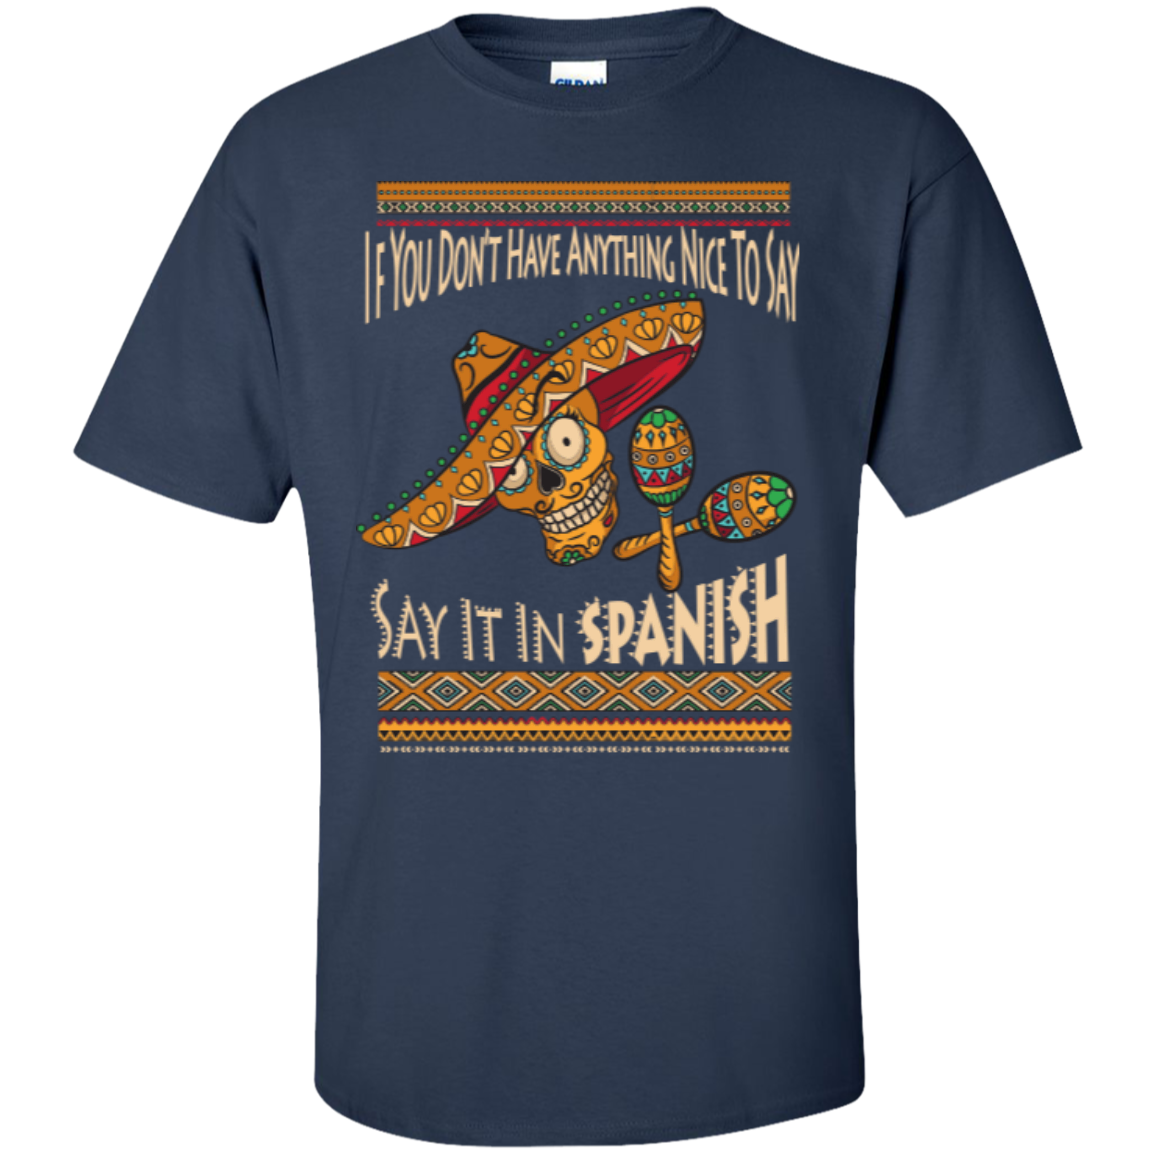 how to say t shirt in spanish